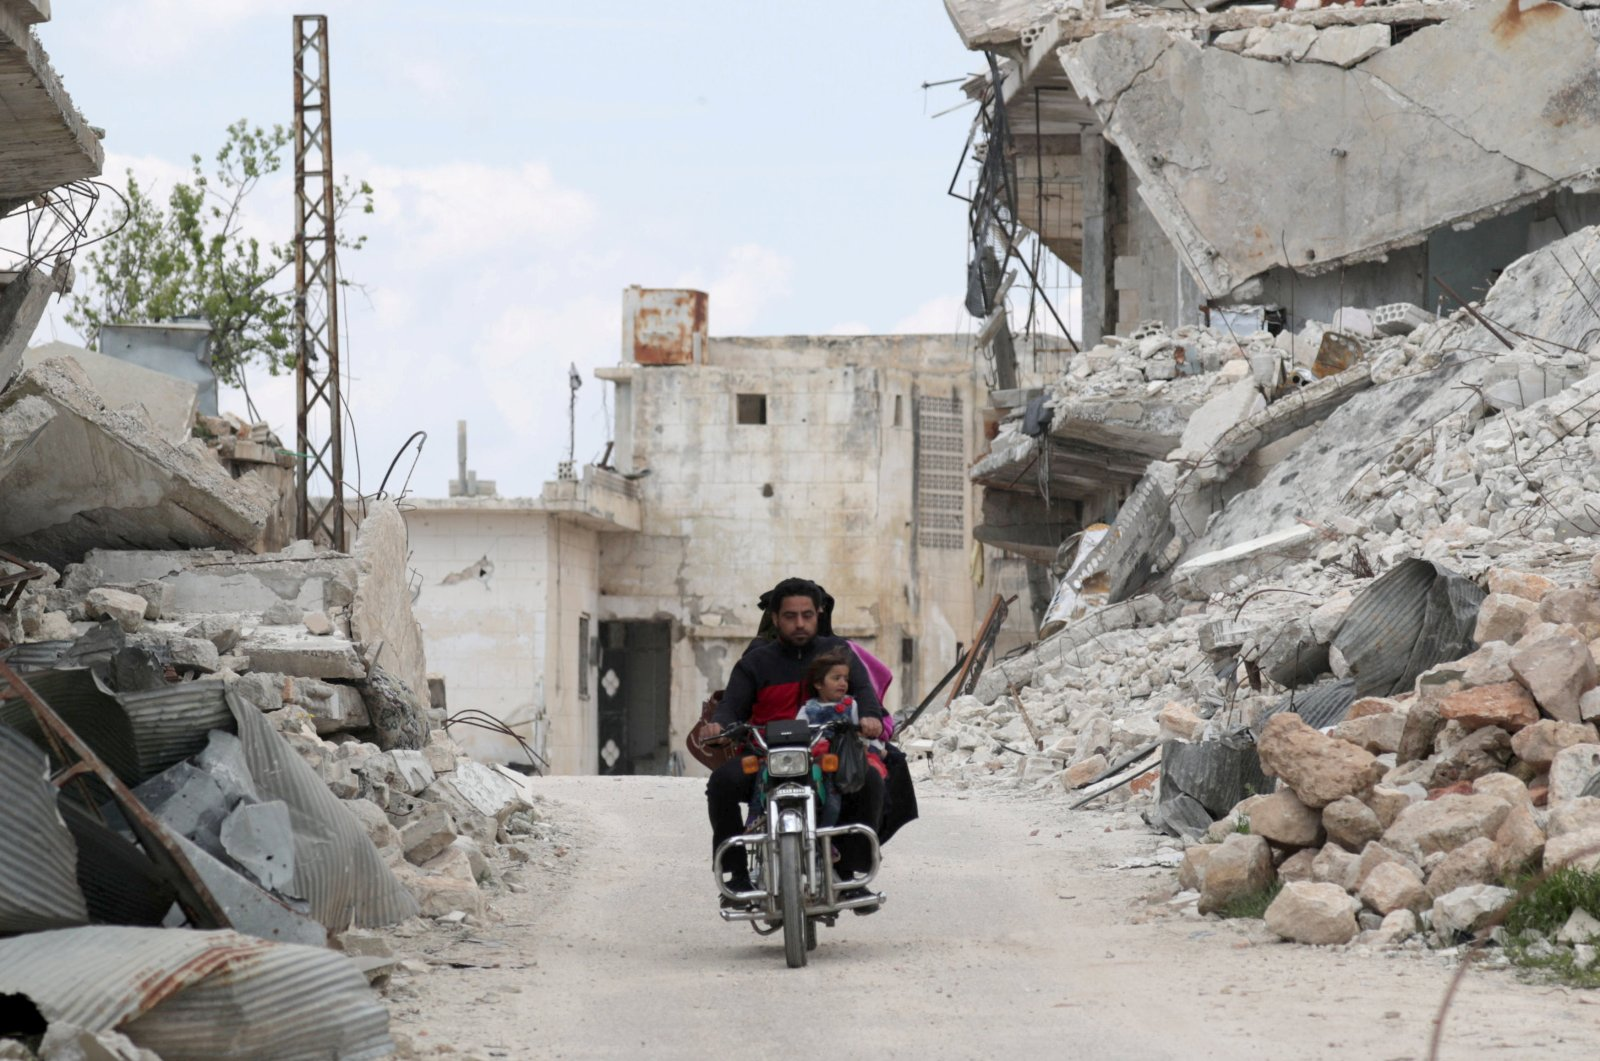 People ride on a motorbike near the rubble of damaged buildings during the coronavirus disease (COVID-19) outbreak in Jabal al-Zawiya, Syria April 12, 2020. (Reuters Photo)